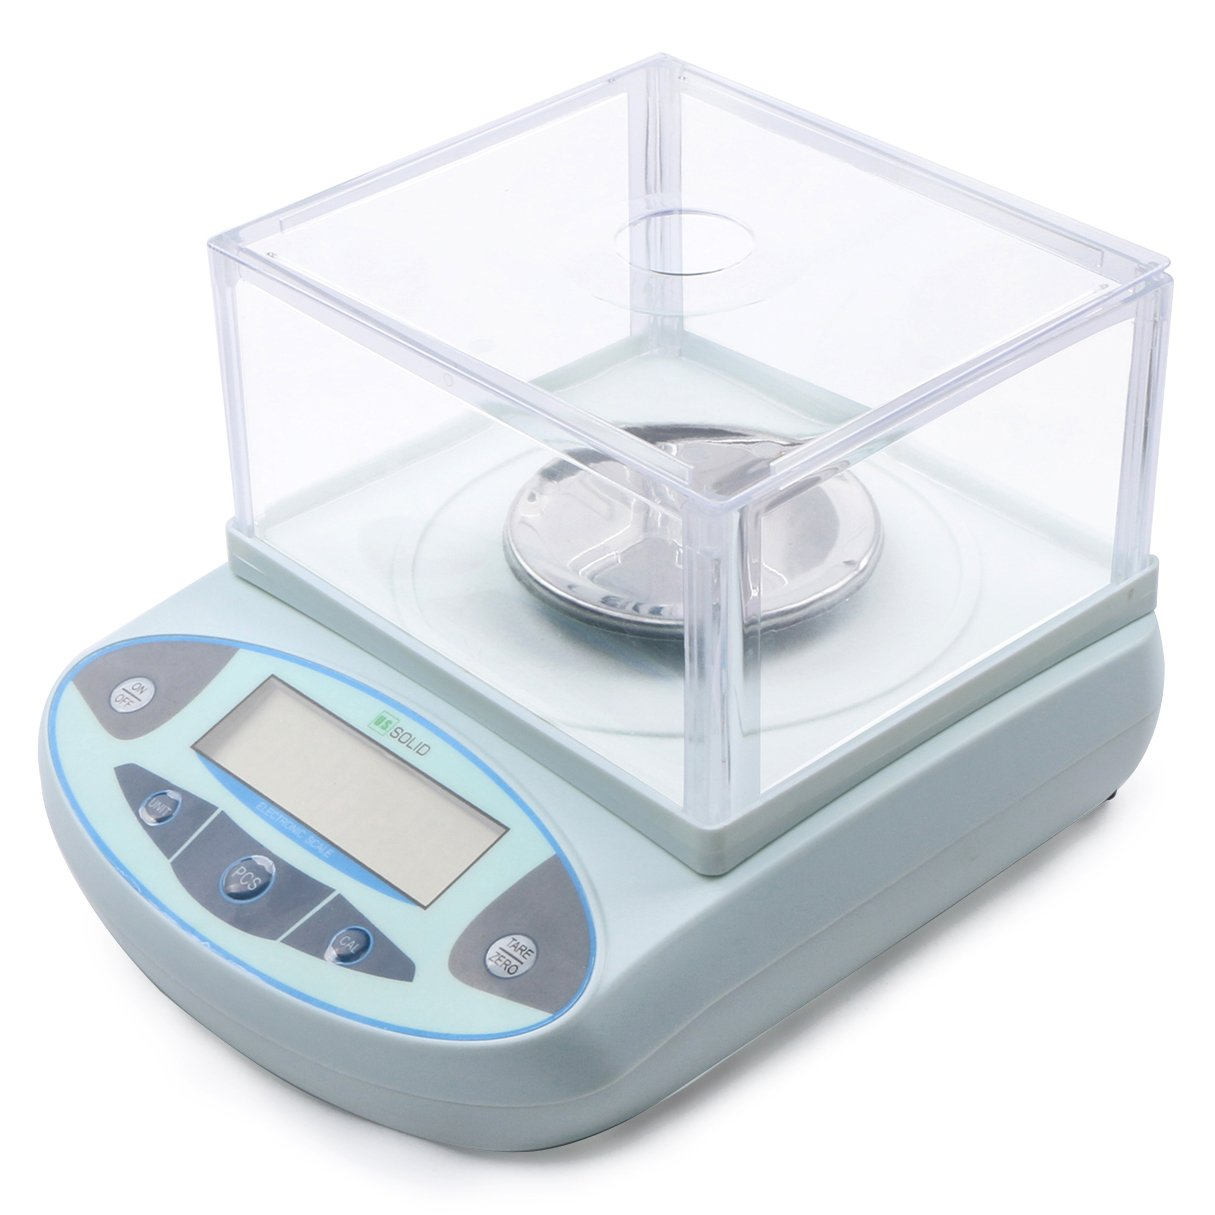 1 mg Lab Analytical Balance 500 x 0.001 g Digital Precision Scale Electronic Scale CE Certified